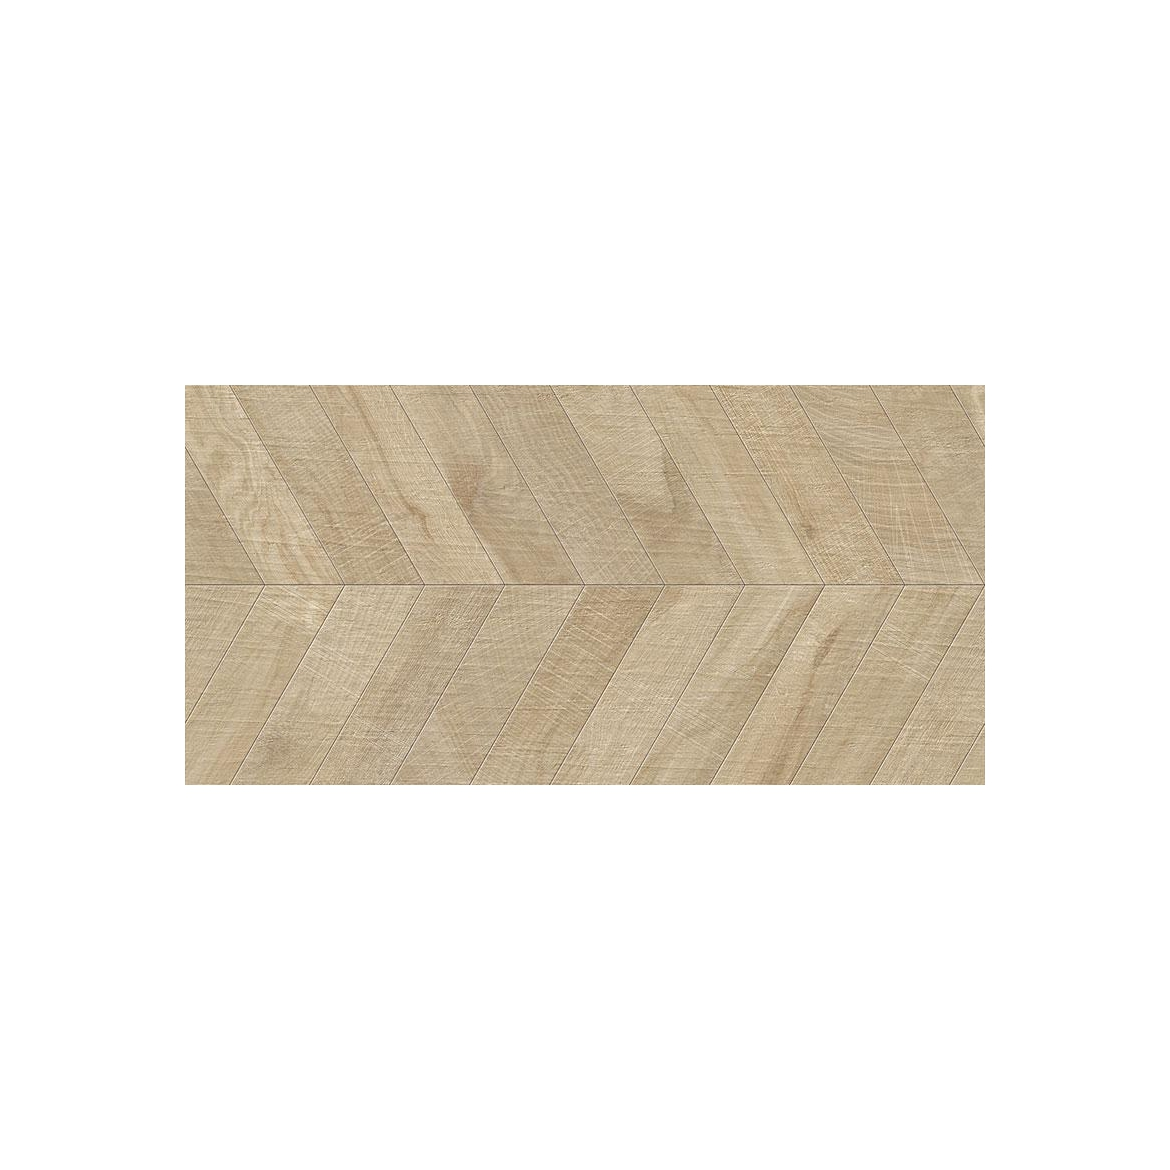 https://cerdesign.pl/2358-large_default/plytki-ibero-chevron-artwood-maple-60x120-cm.jpg